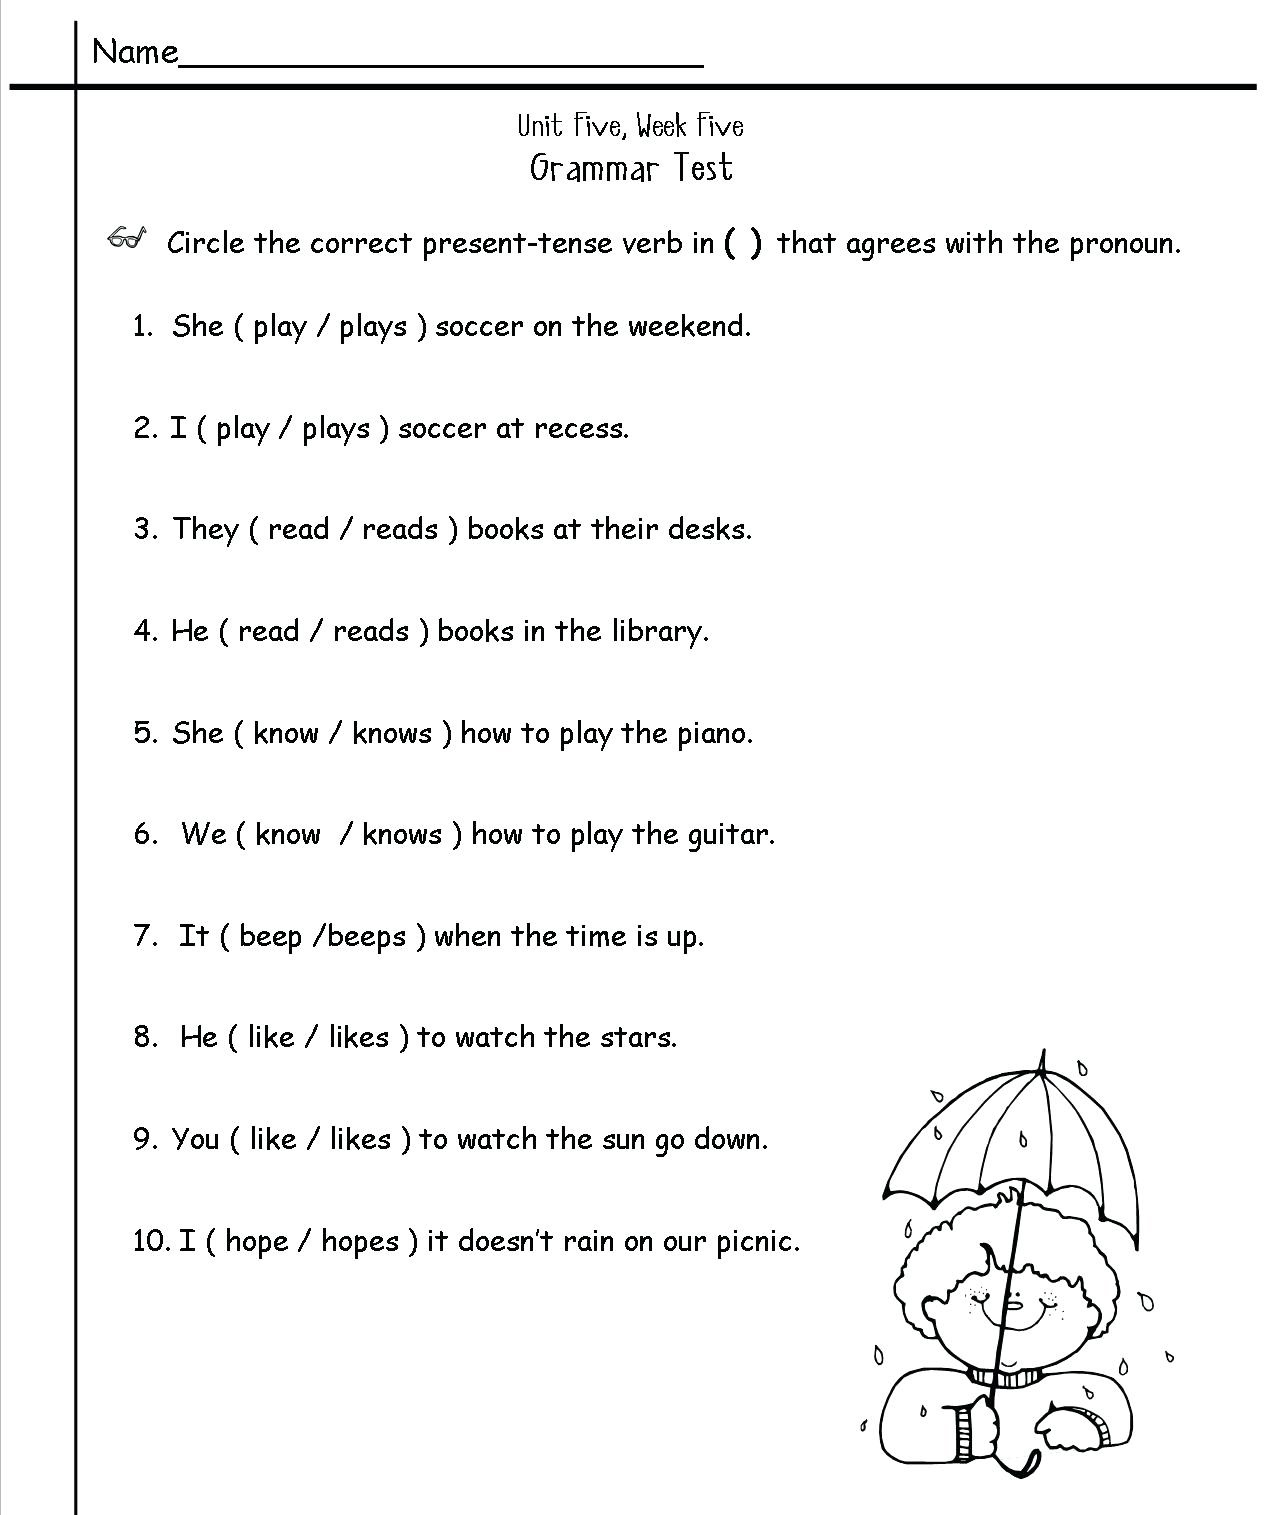 2ndGradeEnglishWorksheetsGrammar.jpg (1275×1515